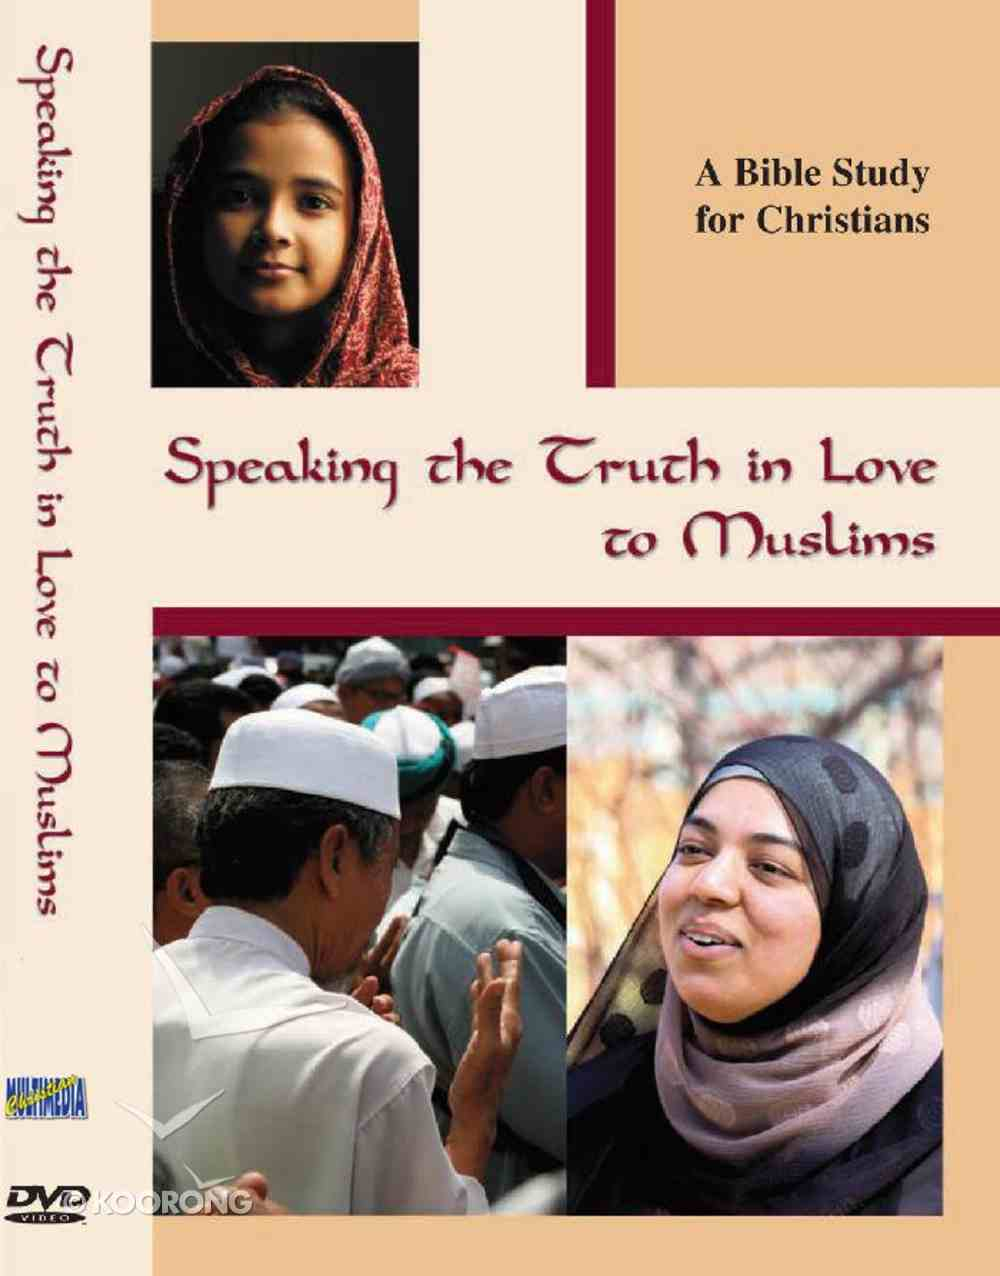 Speaking the Truth in Love to Muslims DVD